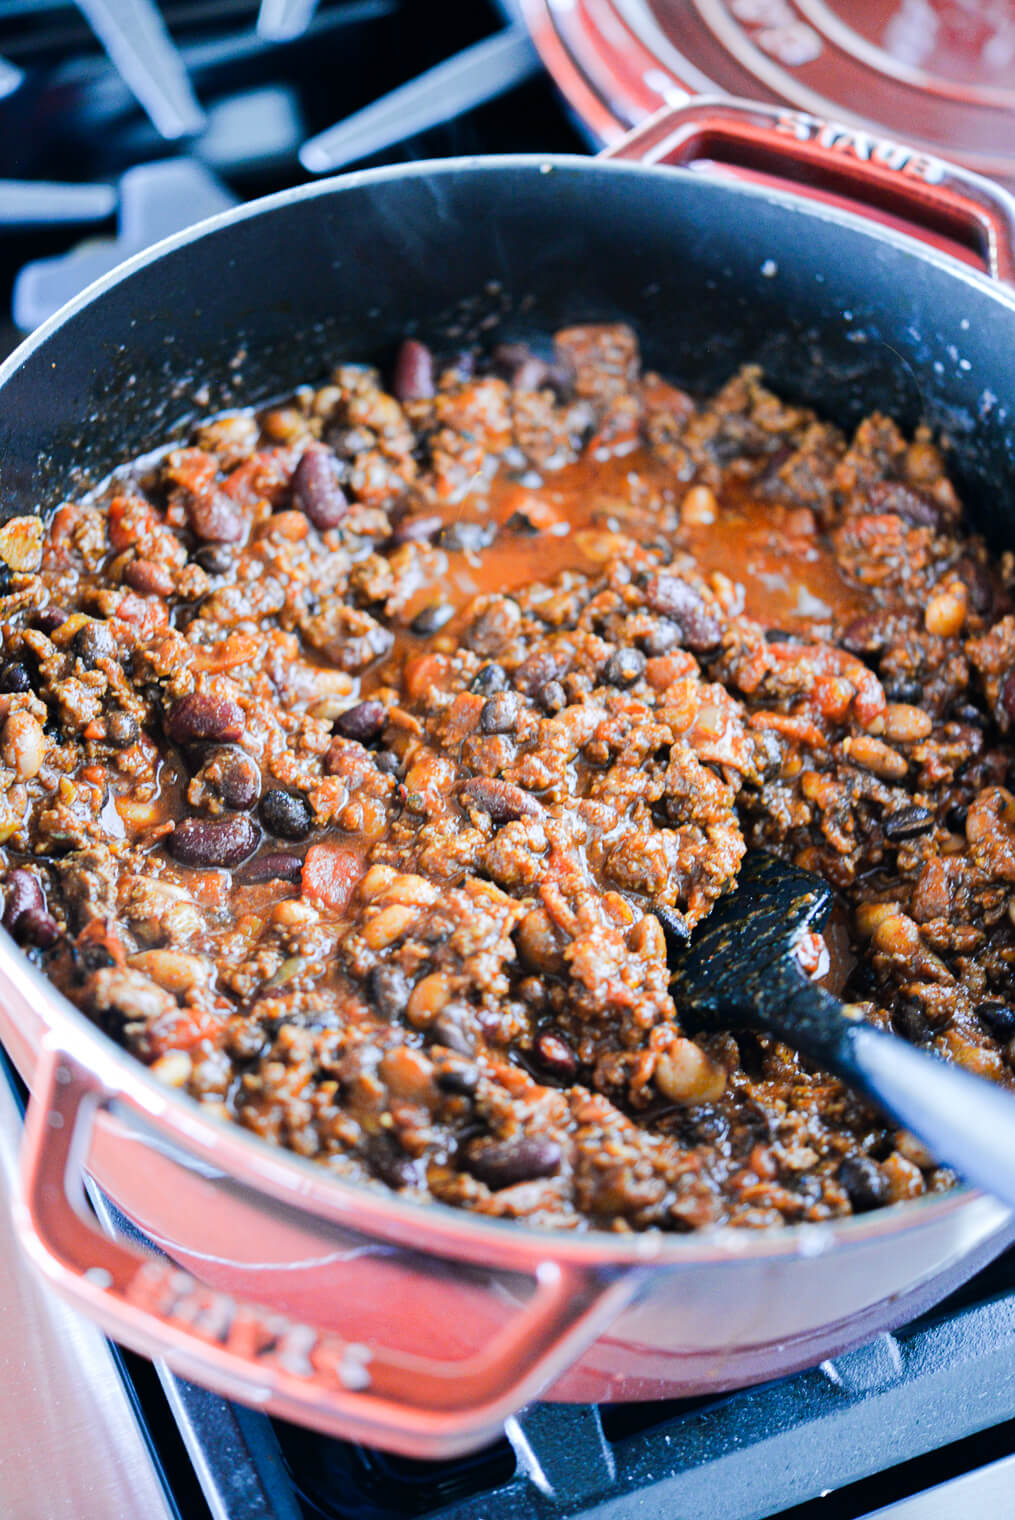 finished ground beef chili in a large red pot on the stovetop